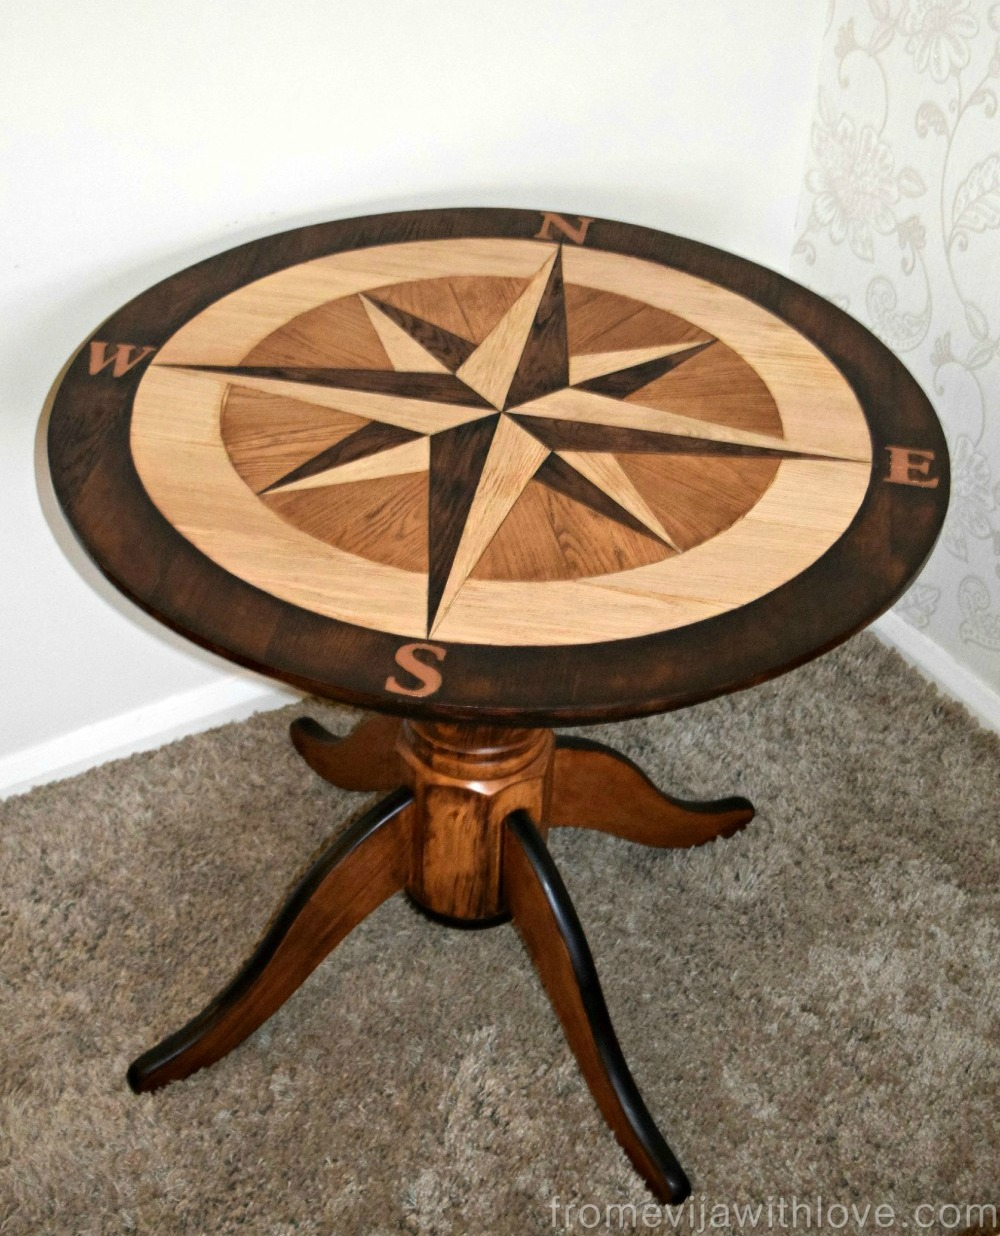 DIY Compass Table - by From Evija with Love